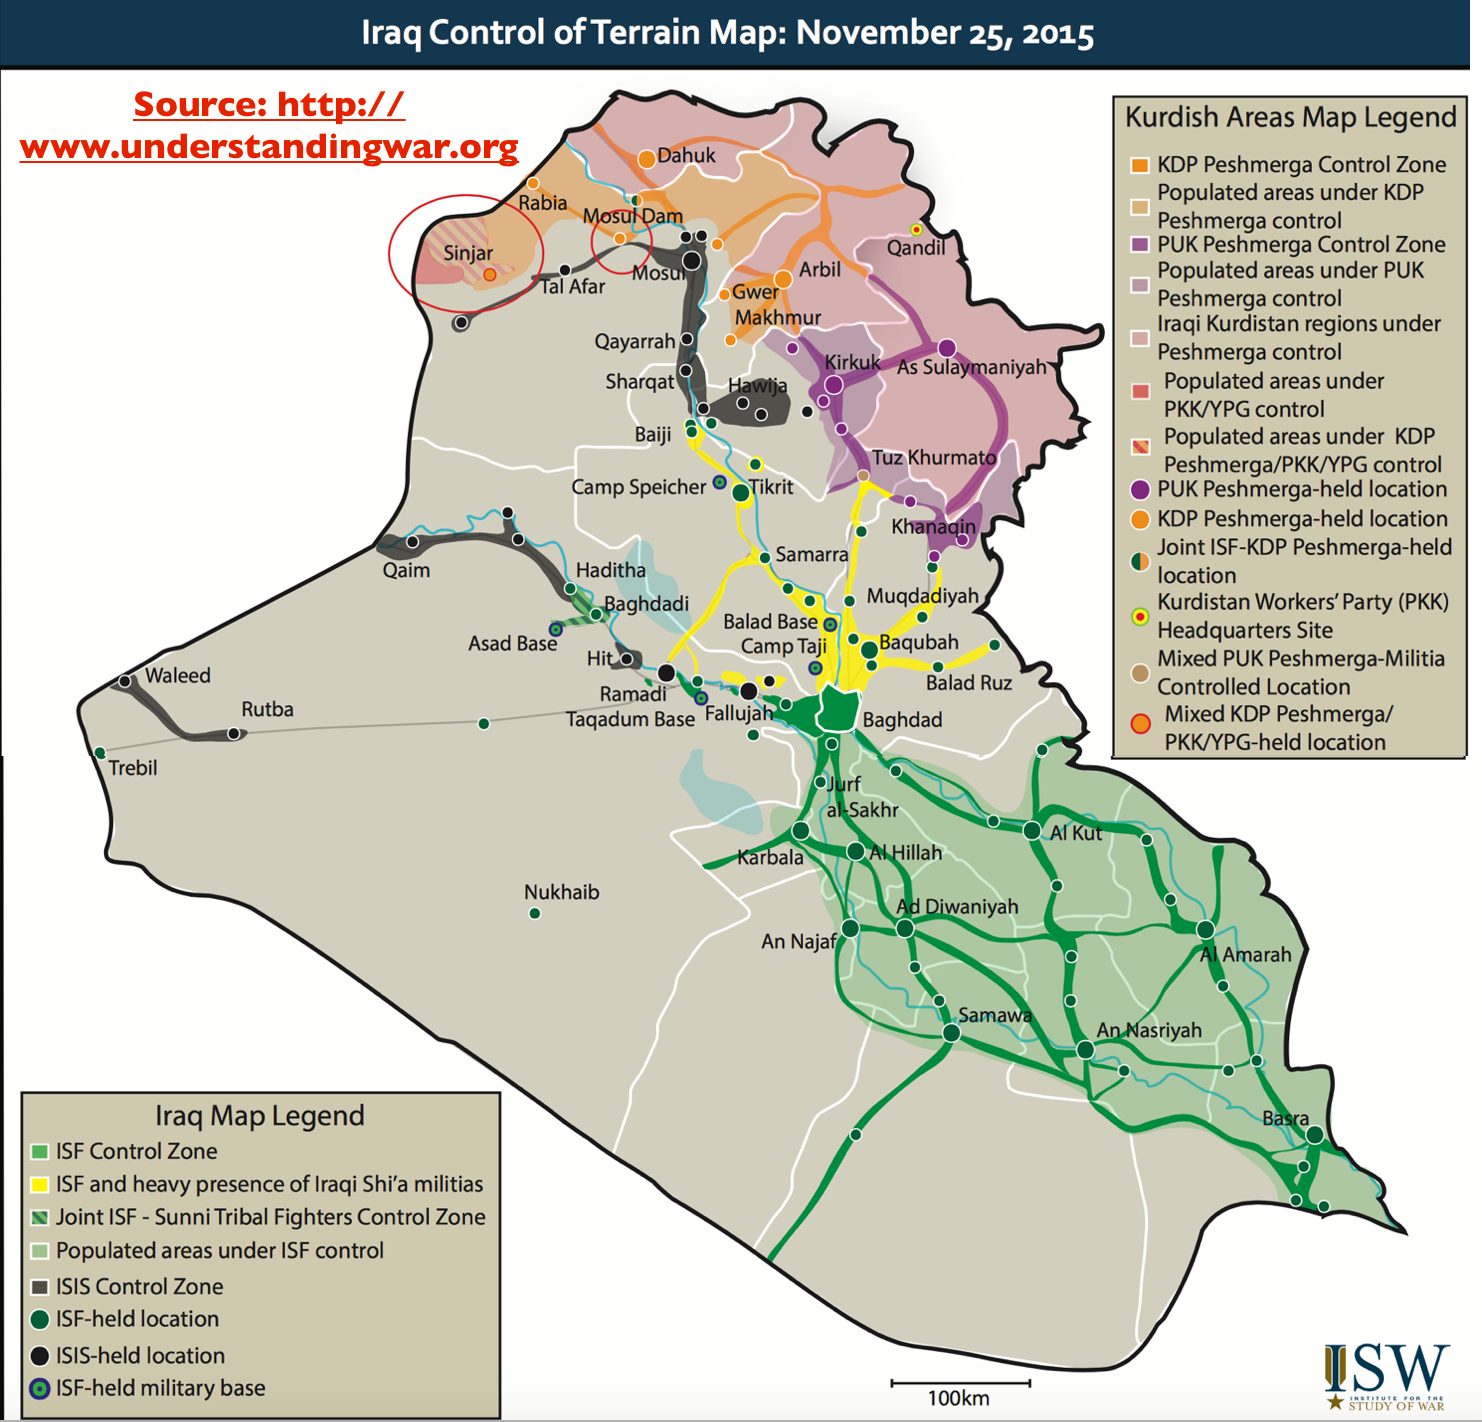 A map of the wars in Iraq in November 2015.  Half of the county, the half which is desert away from roads, is marked as belonging to nobody, while the rest belongs to various pro-Baghdad, Kurdish, and Islamist factions